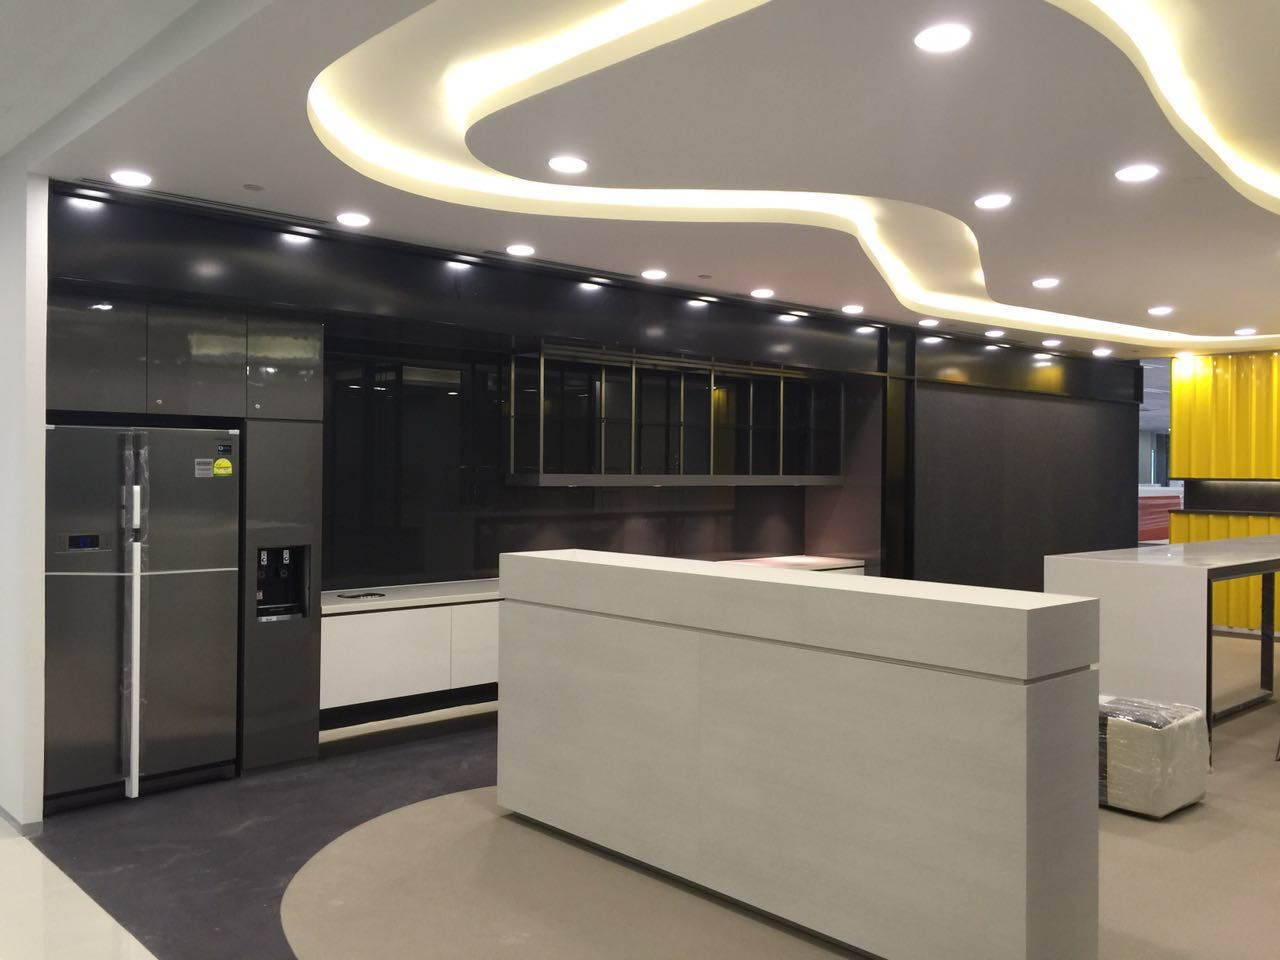 astar furnishing commercial project cabinet 1. DHL 05